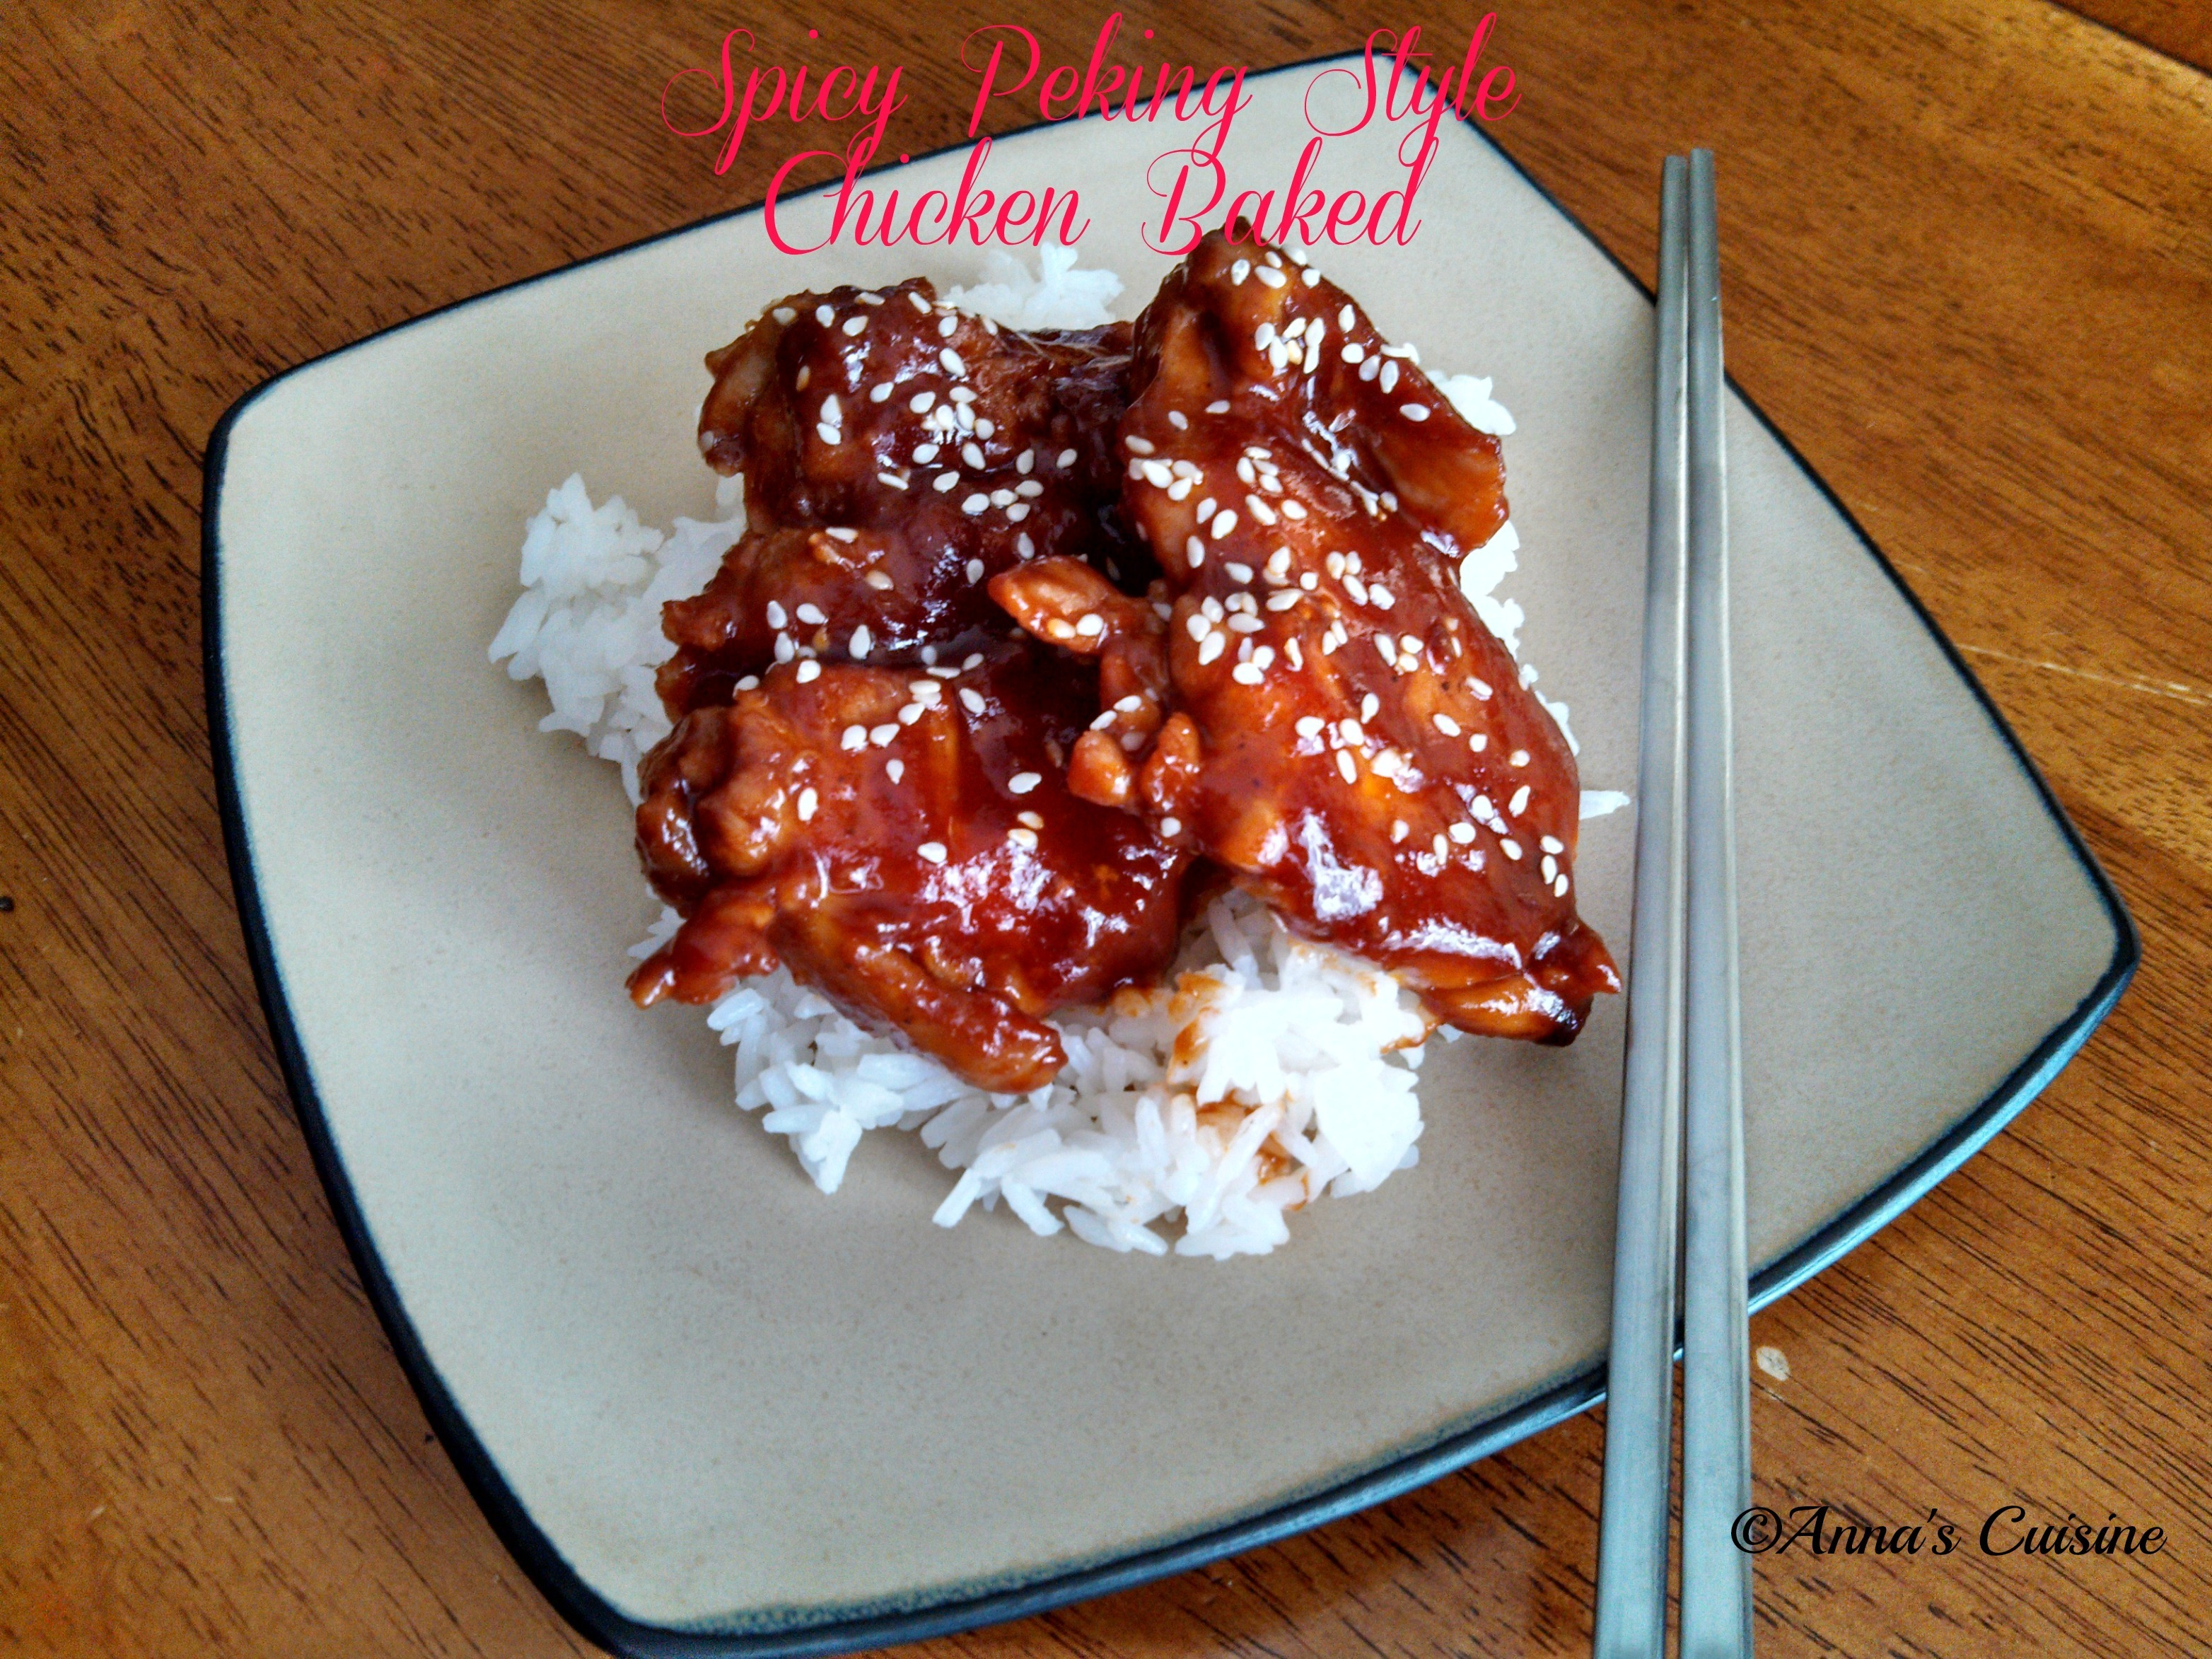 Spicy Peking Style Chicken Baked